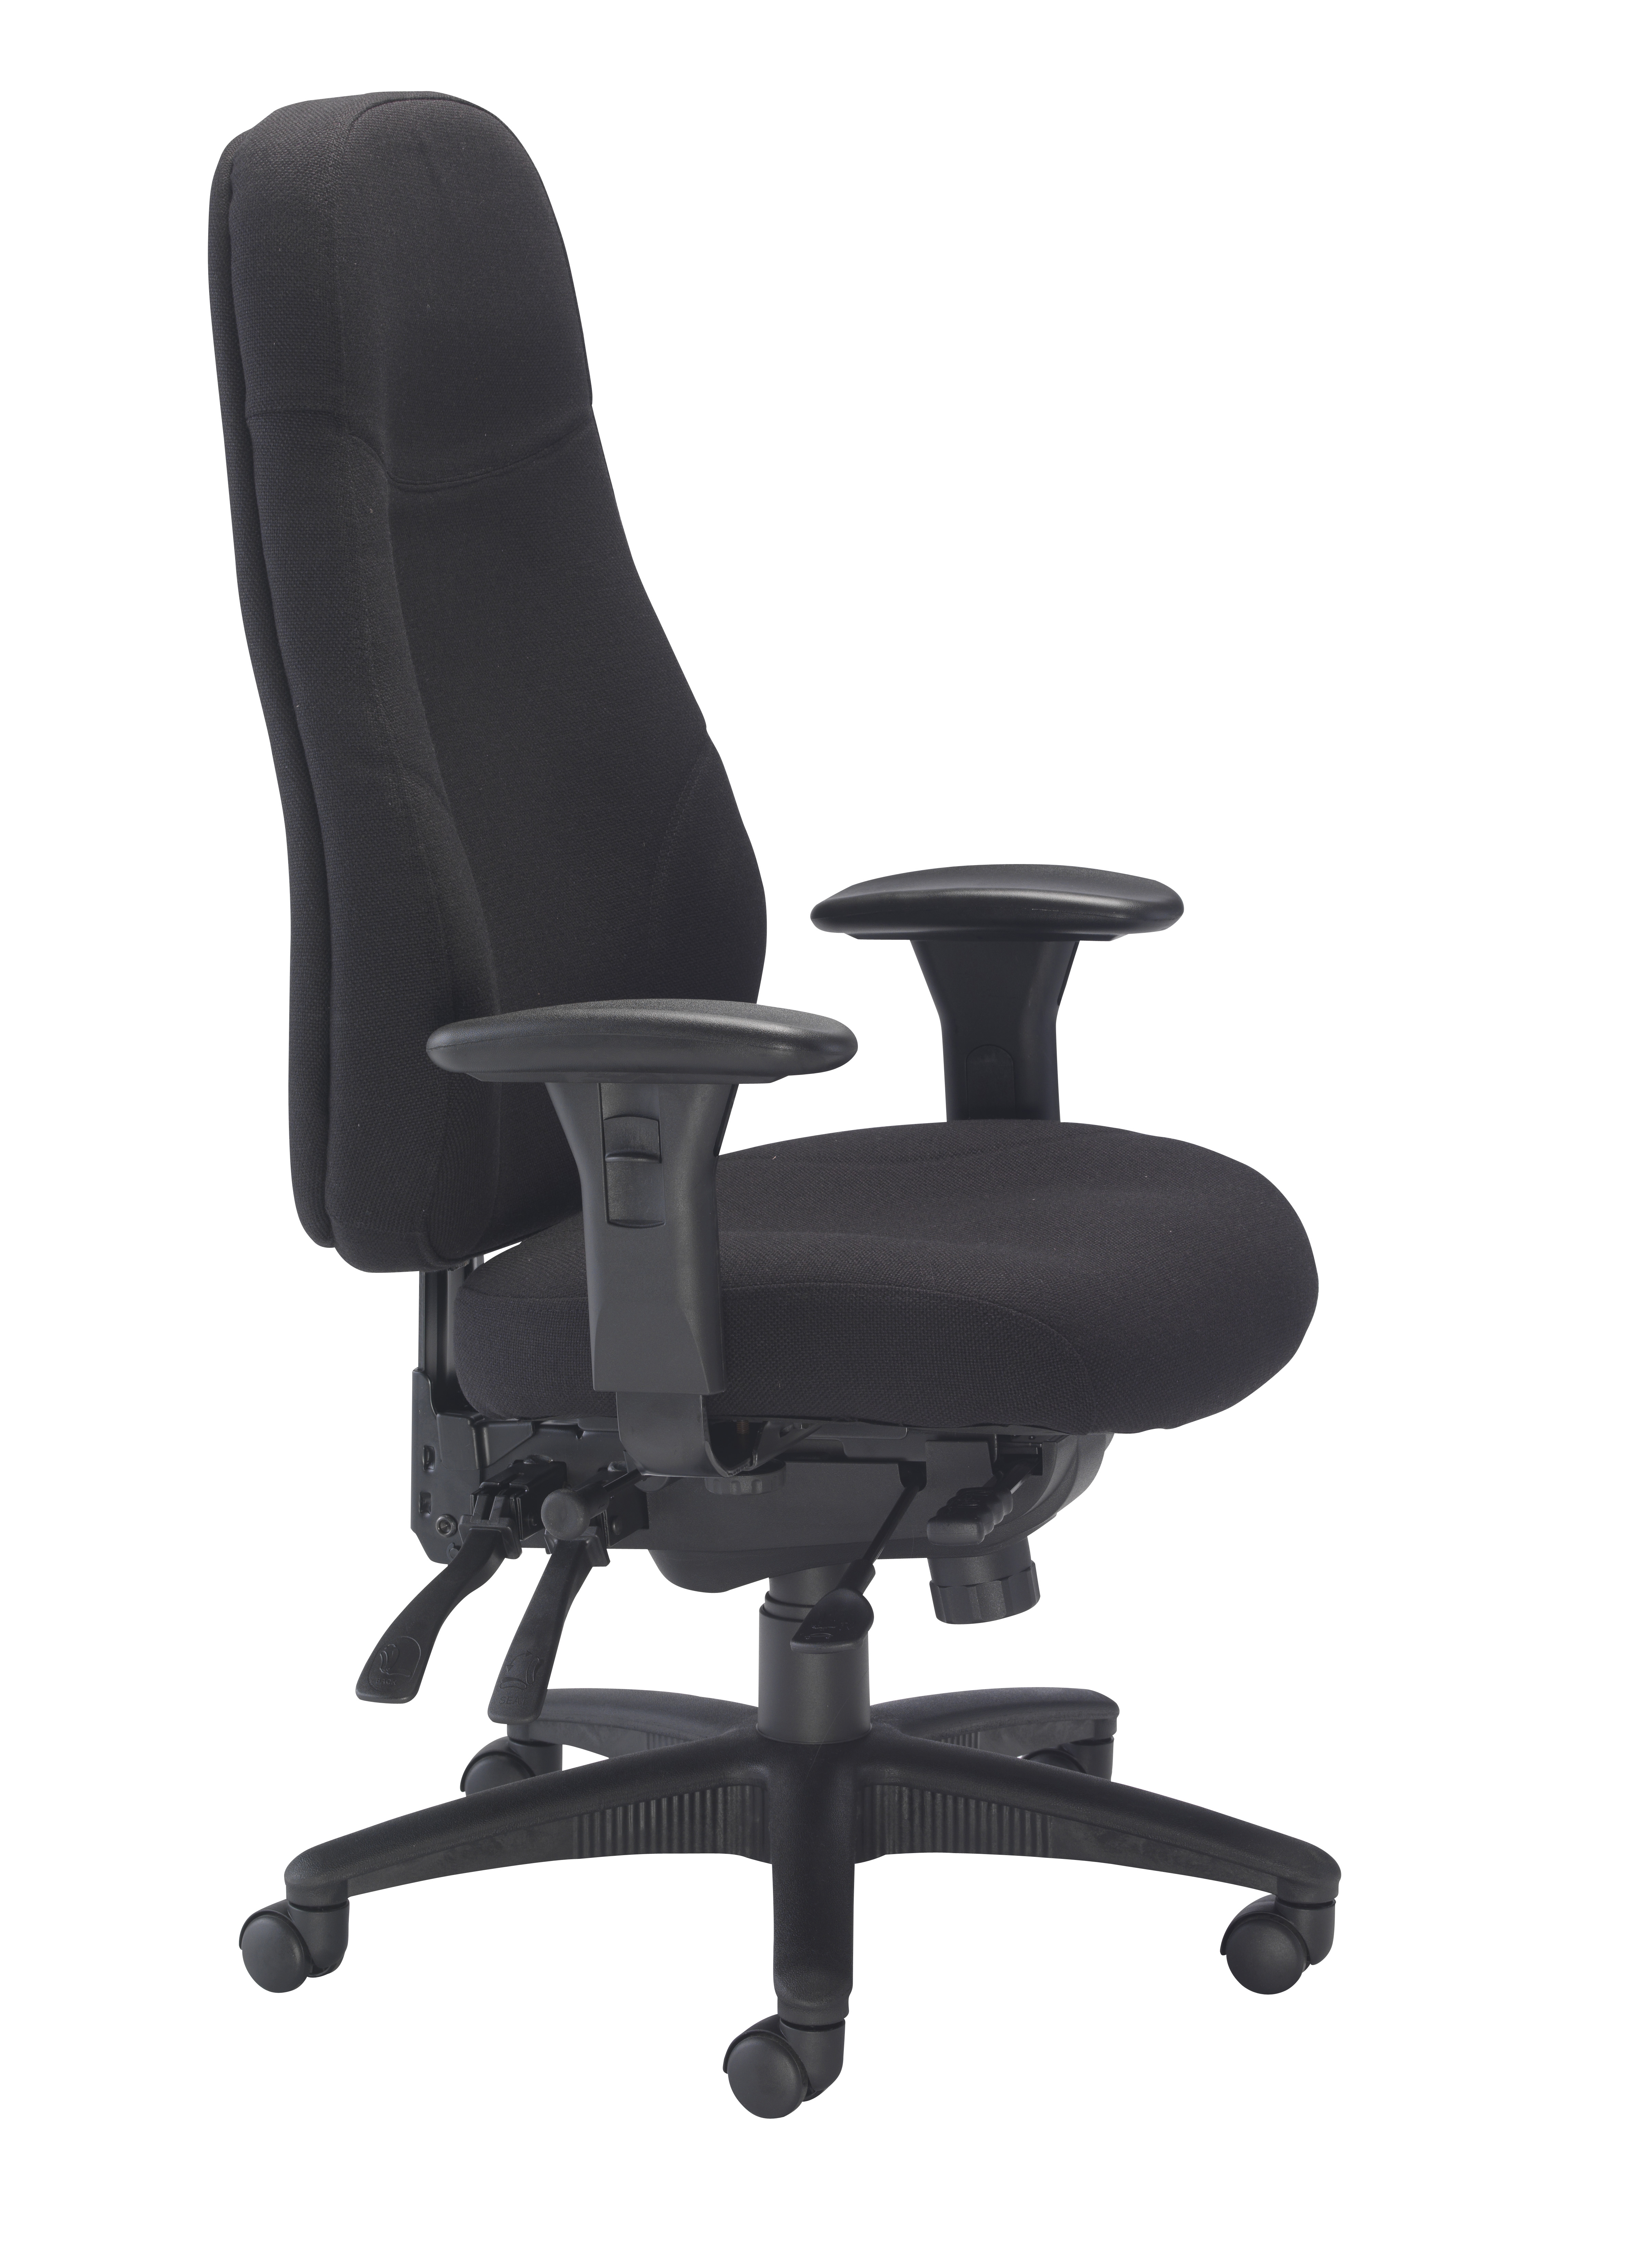 Managers Task Chair Black Side View